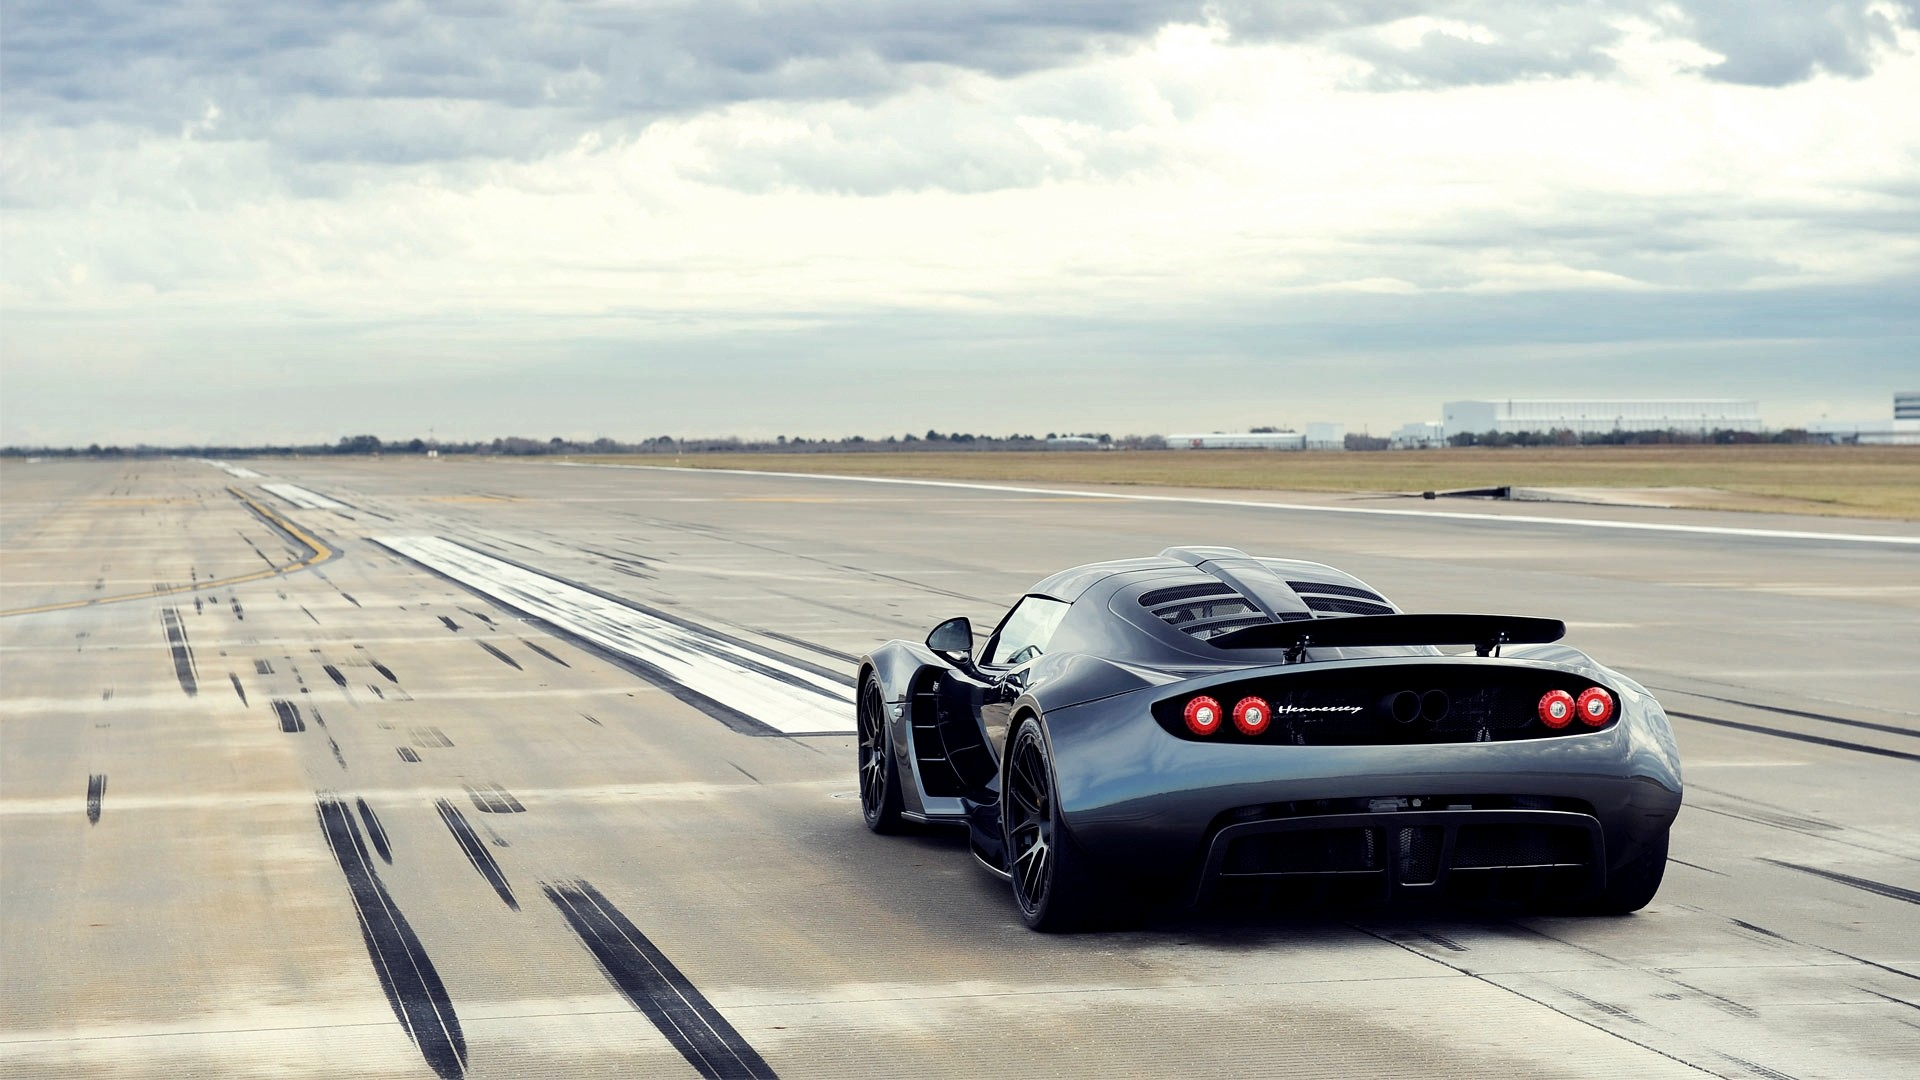 Wallpapers HD 1080p Cars 62 Wallpapers Adorable Wallpapers